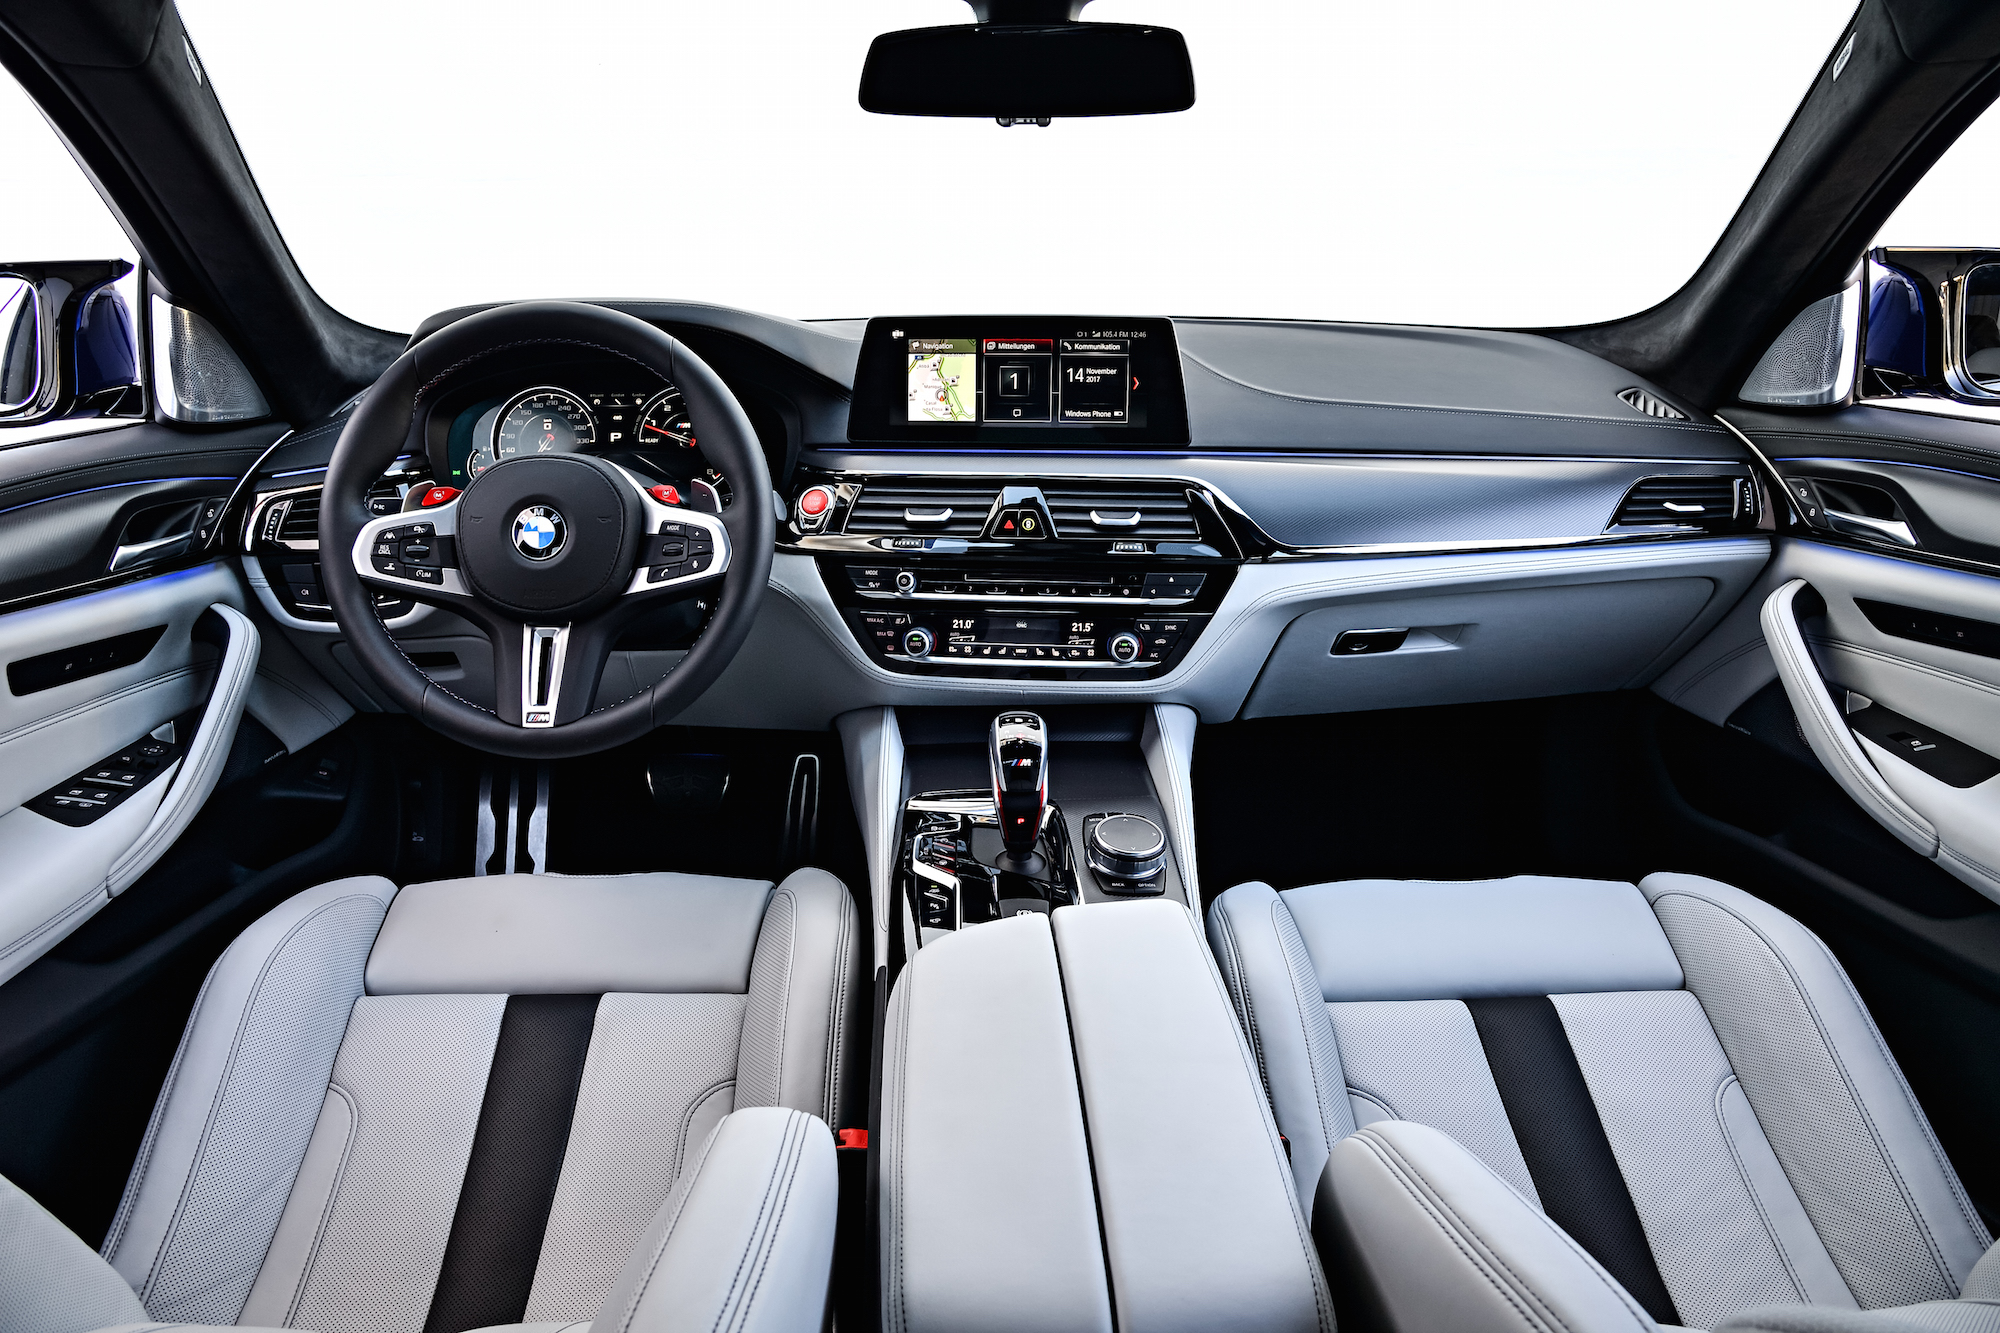 The Interior Receives A Subtle Makeover As Well With Beautifully Tailored Seats That Not Only Look Great But Also Offer Excellent Amounts Of Shoulder